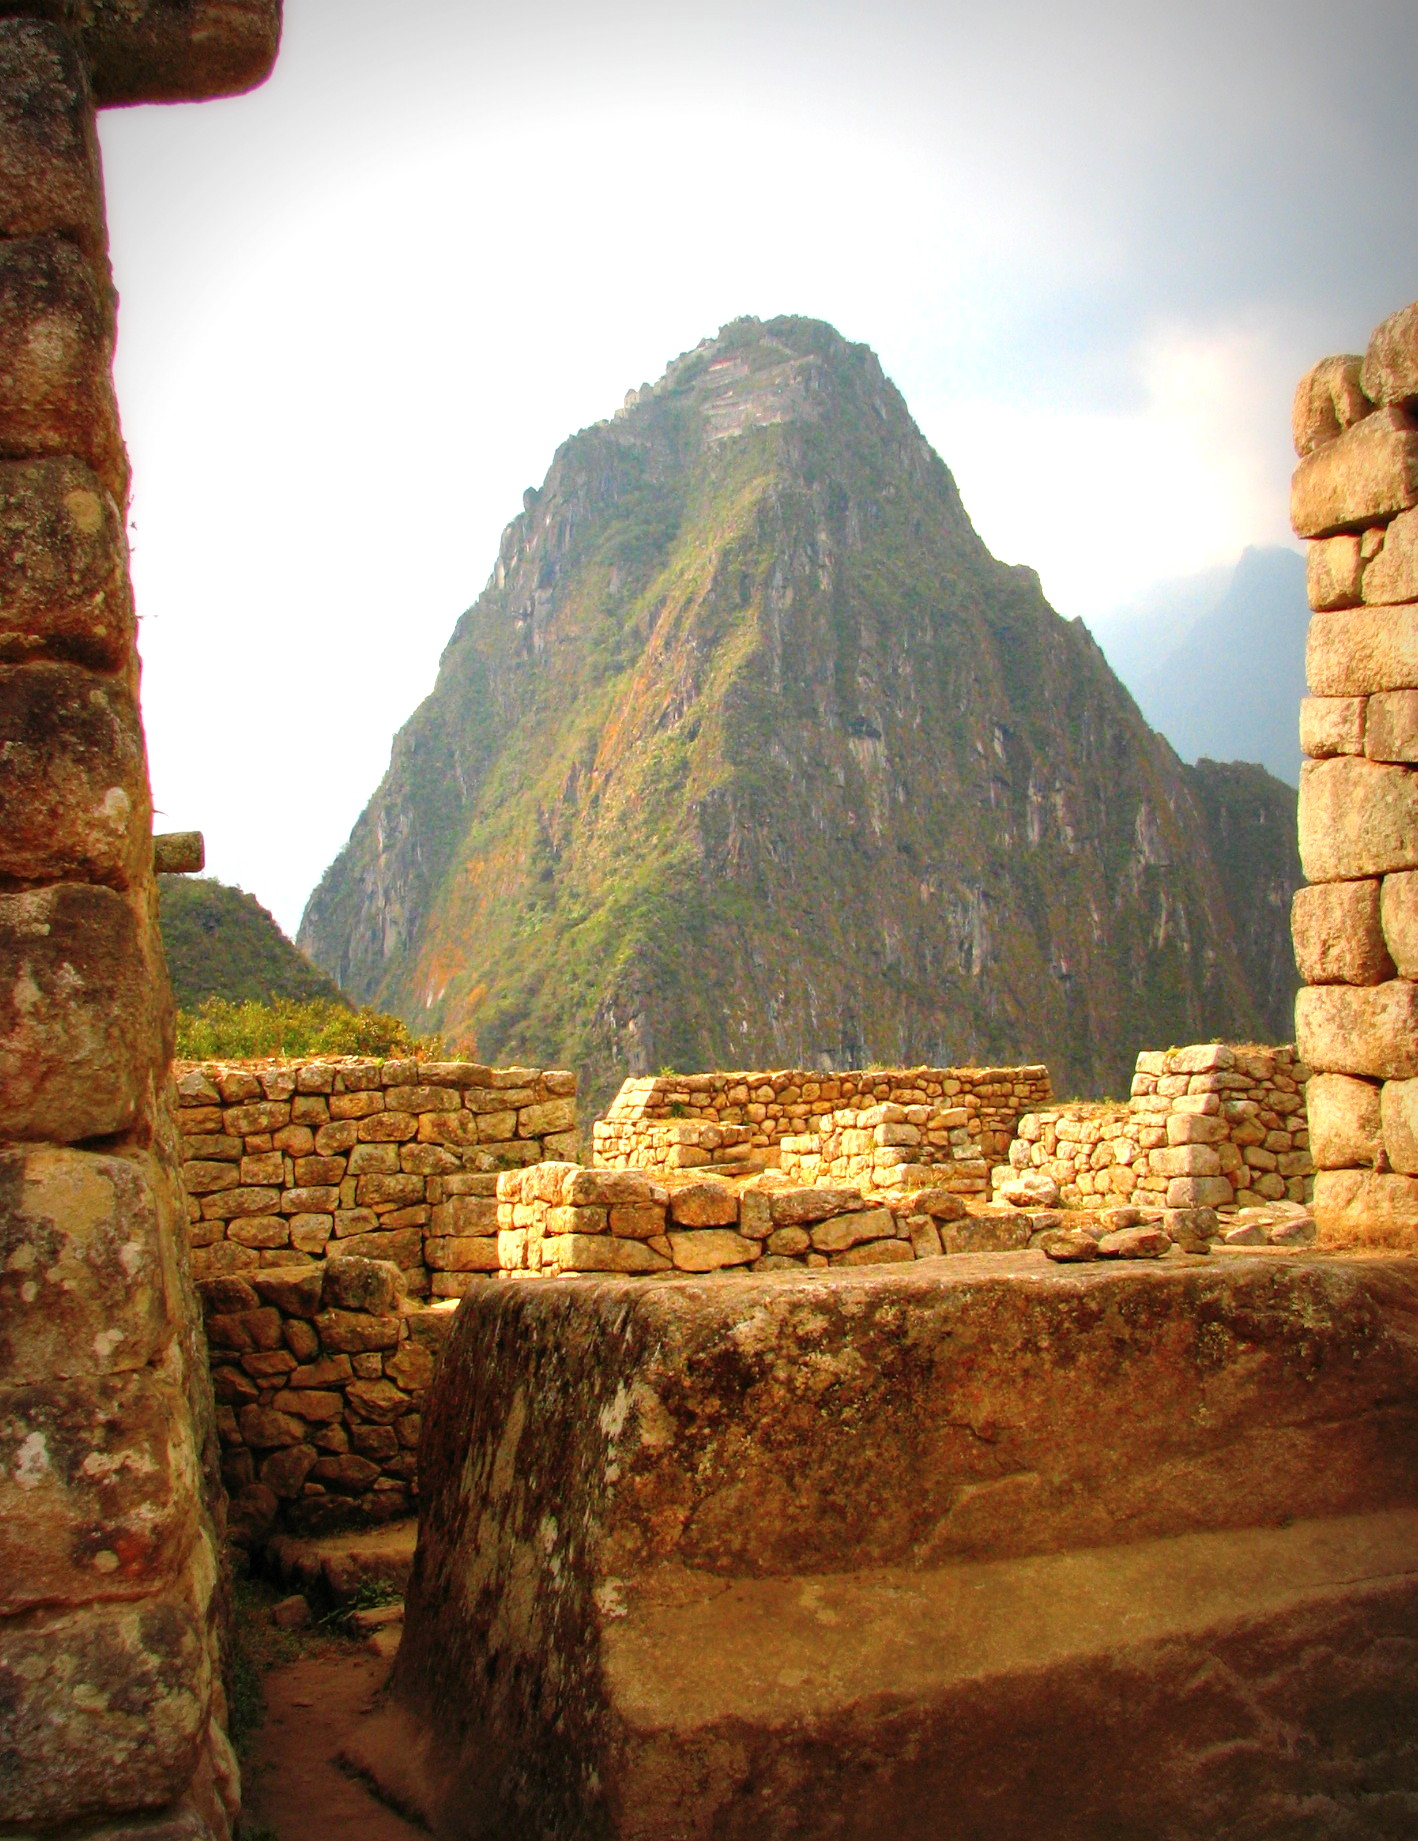 Door of a house overlooking the Peak of Wayna Picchu